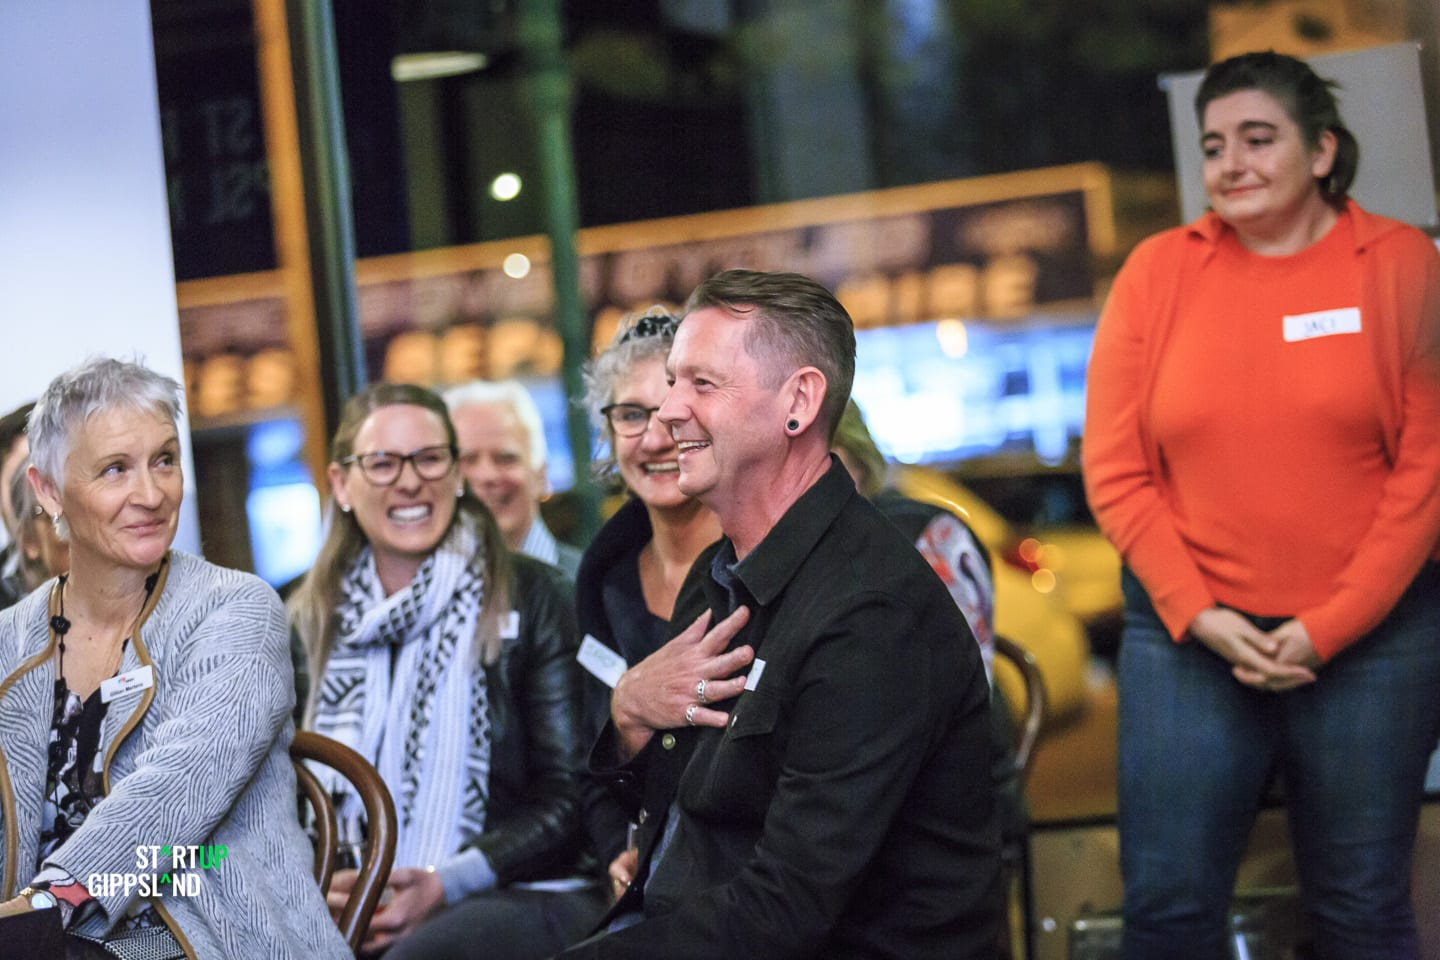 Chris Petrie UpBeat Creative Arts Therapy Startup Gippsland success story